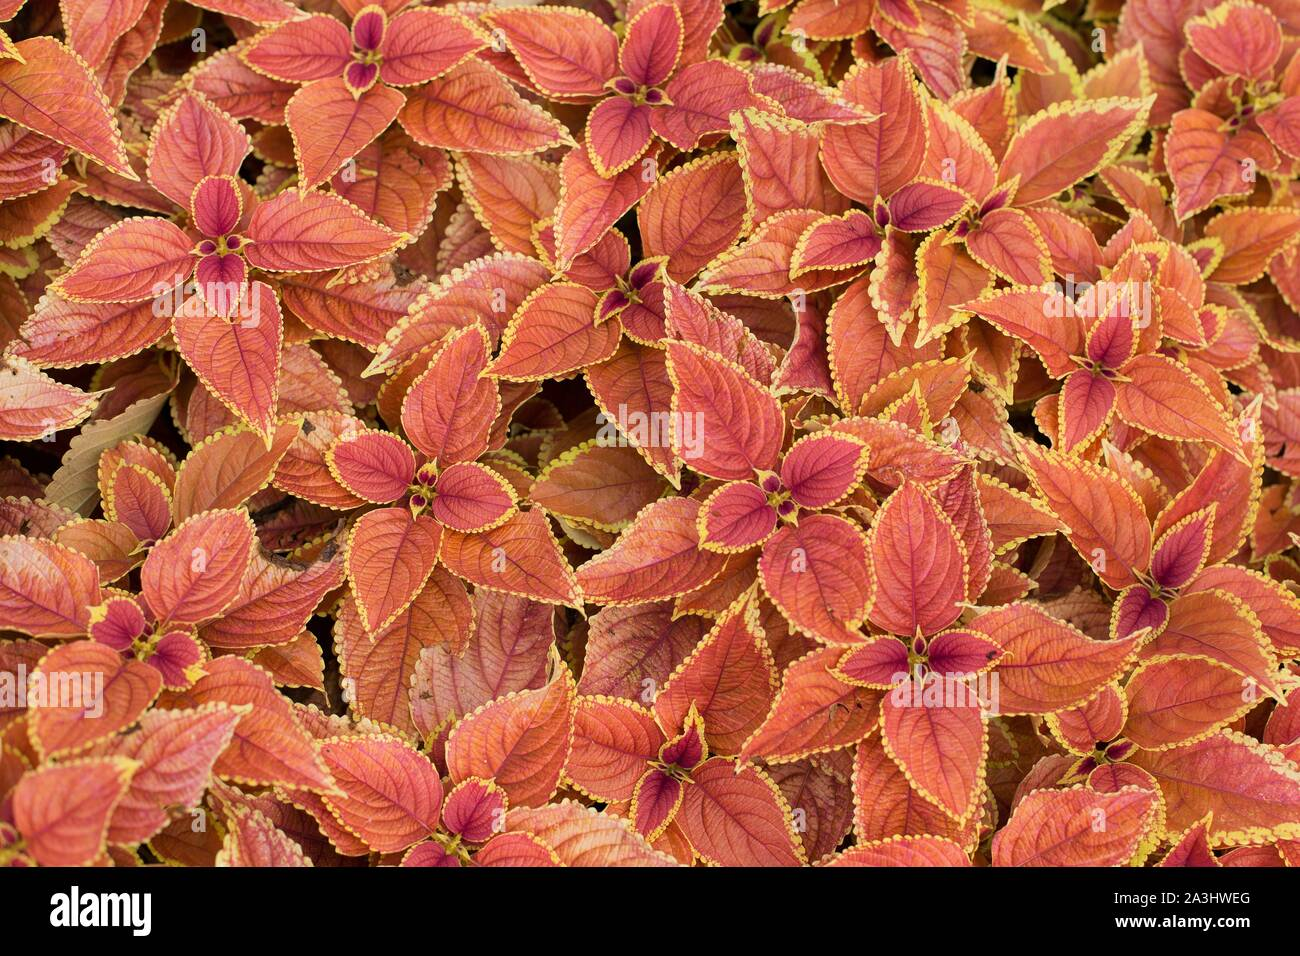 Plectranthus scutellarioides 'Rustic Orange' coleus. Stock Photo